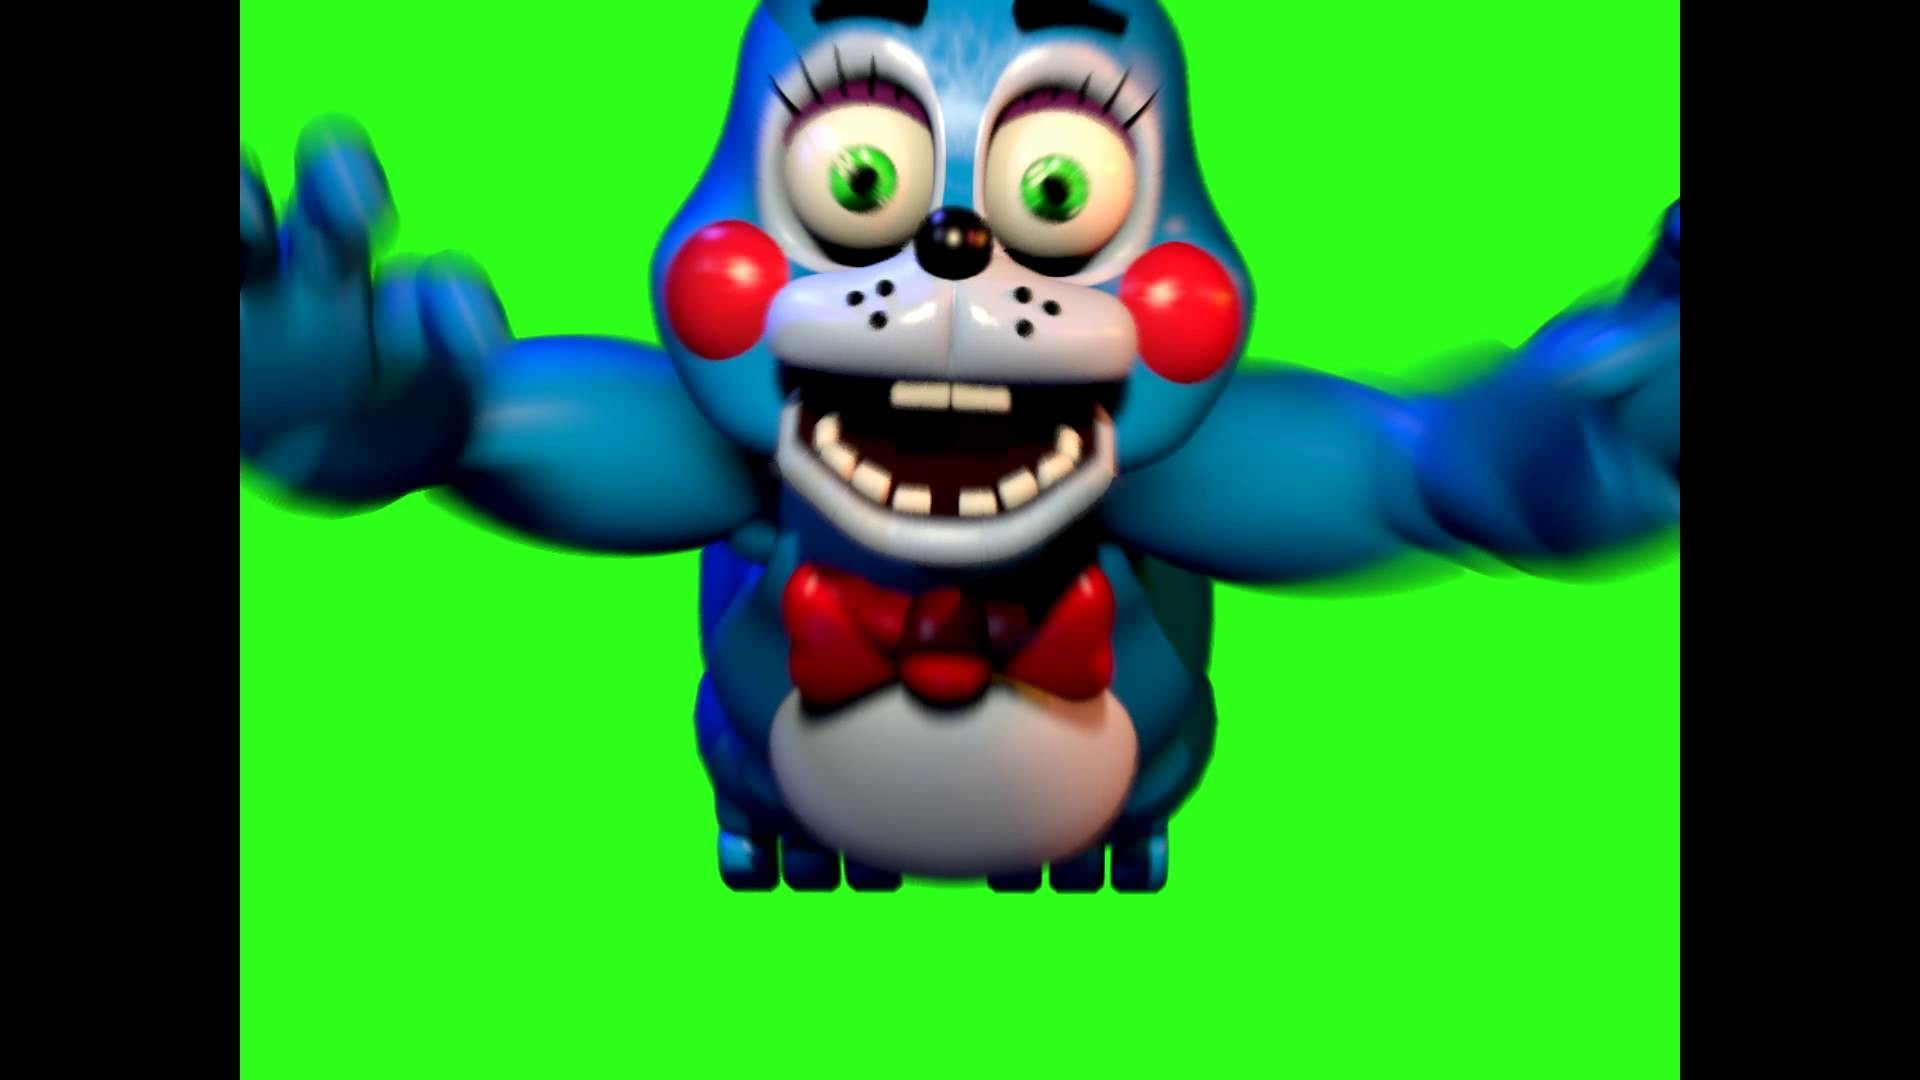 1920x1080 Five Nights at Freddy's 2 Toy Bonnie Jumpscare Green Screen (If you use it  give me credit in desc) - YouTube